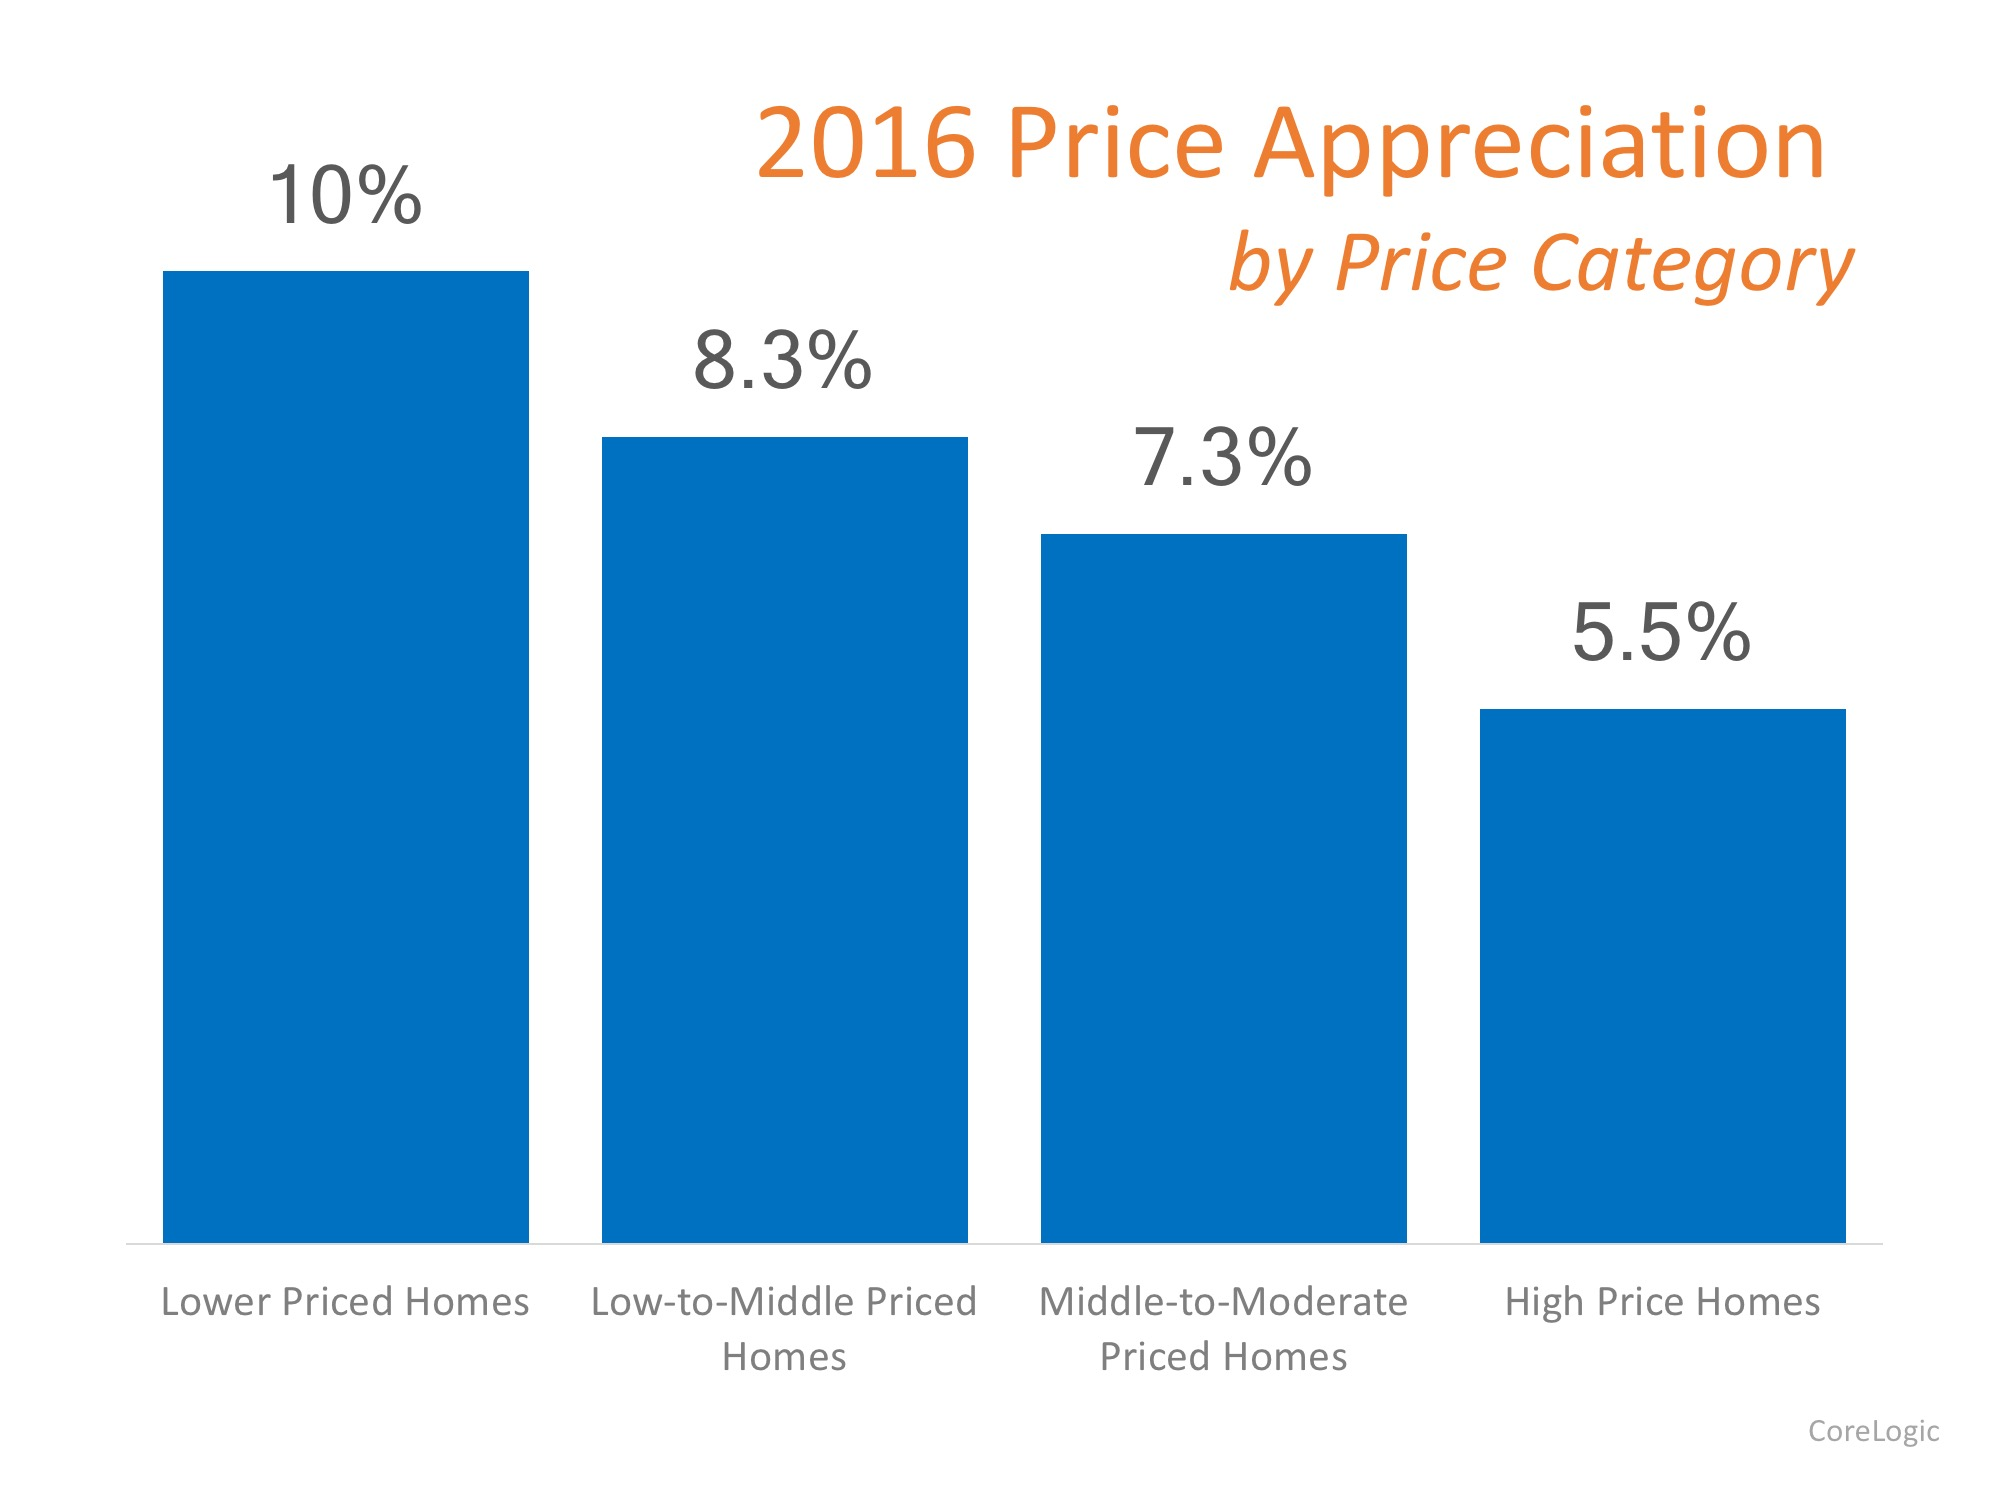 Bottom Line   The lower priced homes (which are more in demand) appreciated at greater rates than the homes at the upper ends of the spectrum